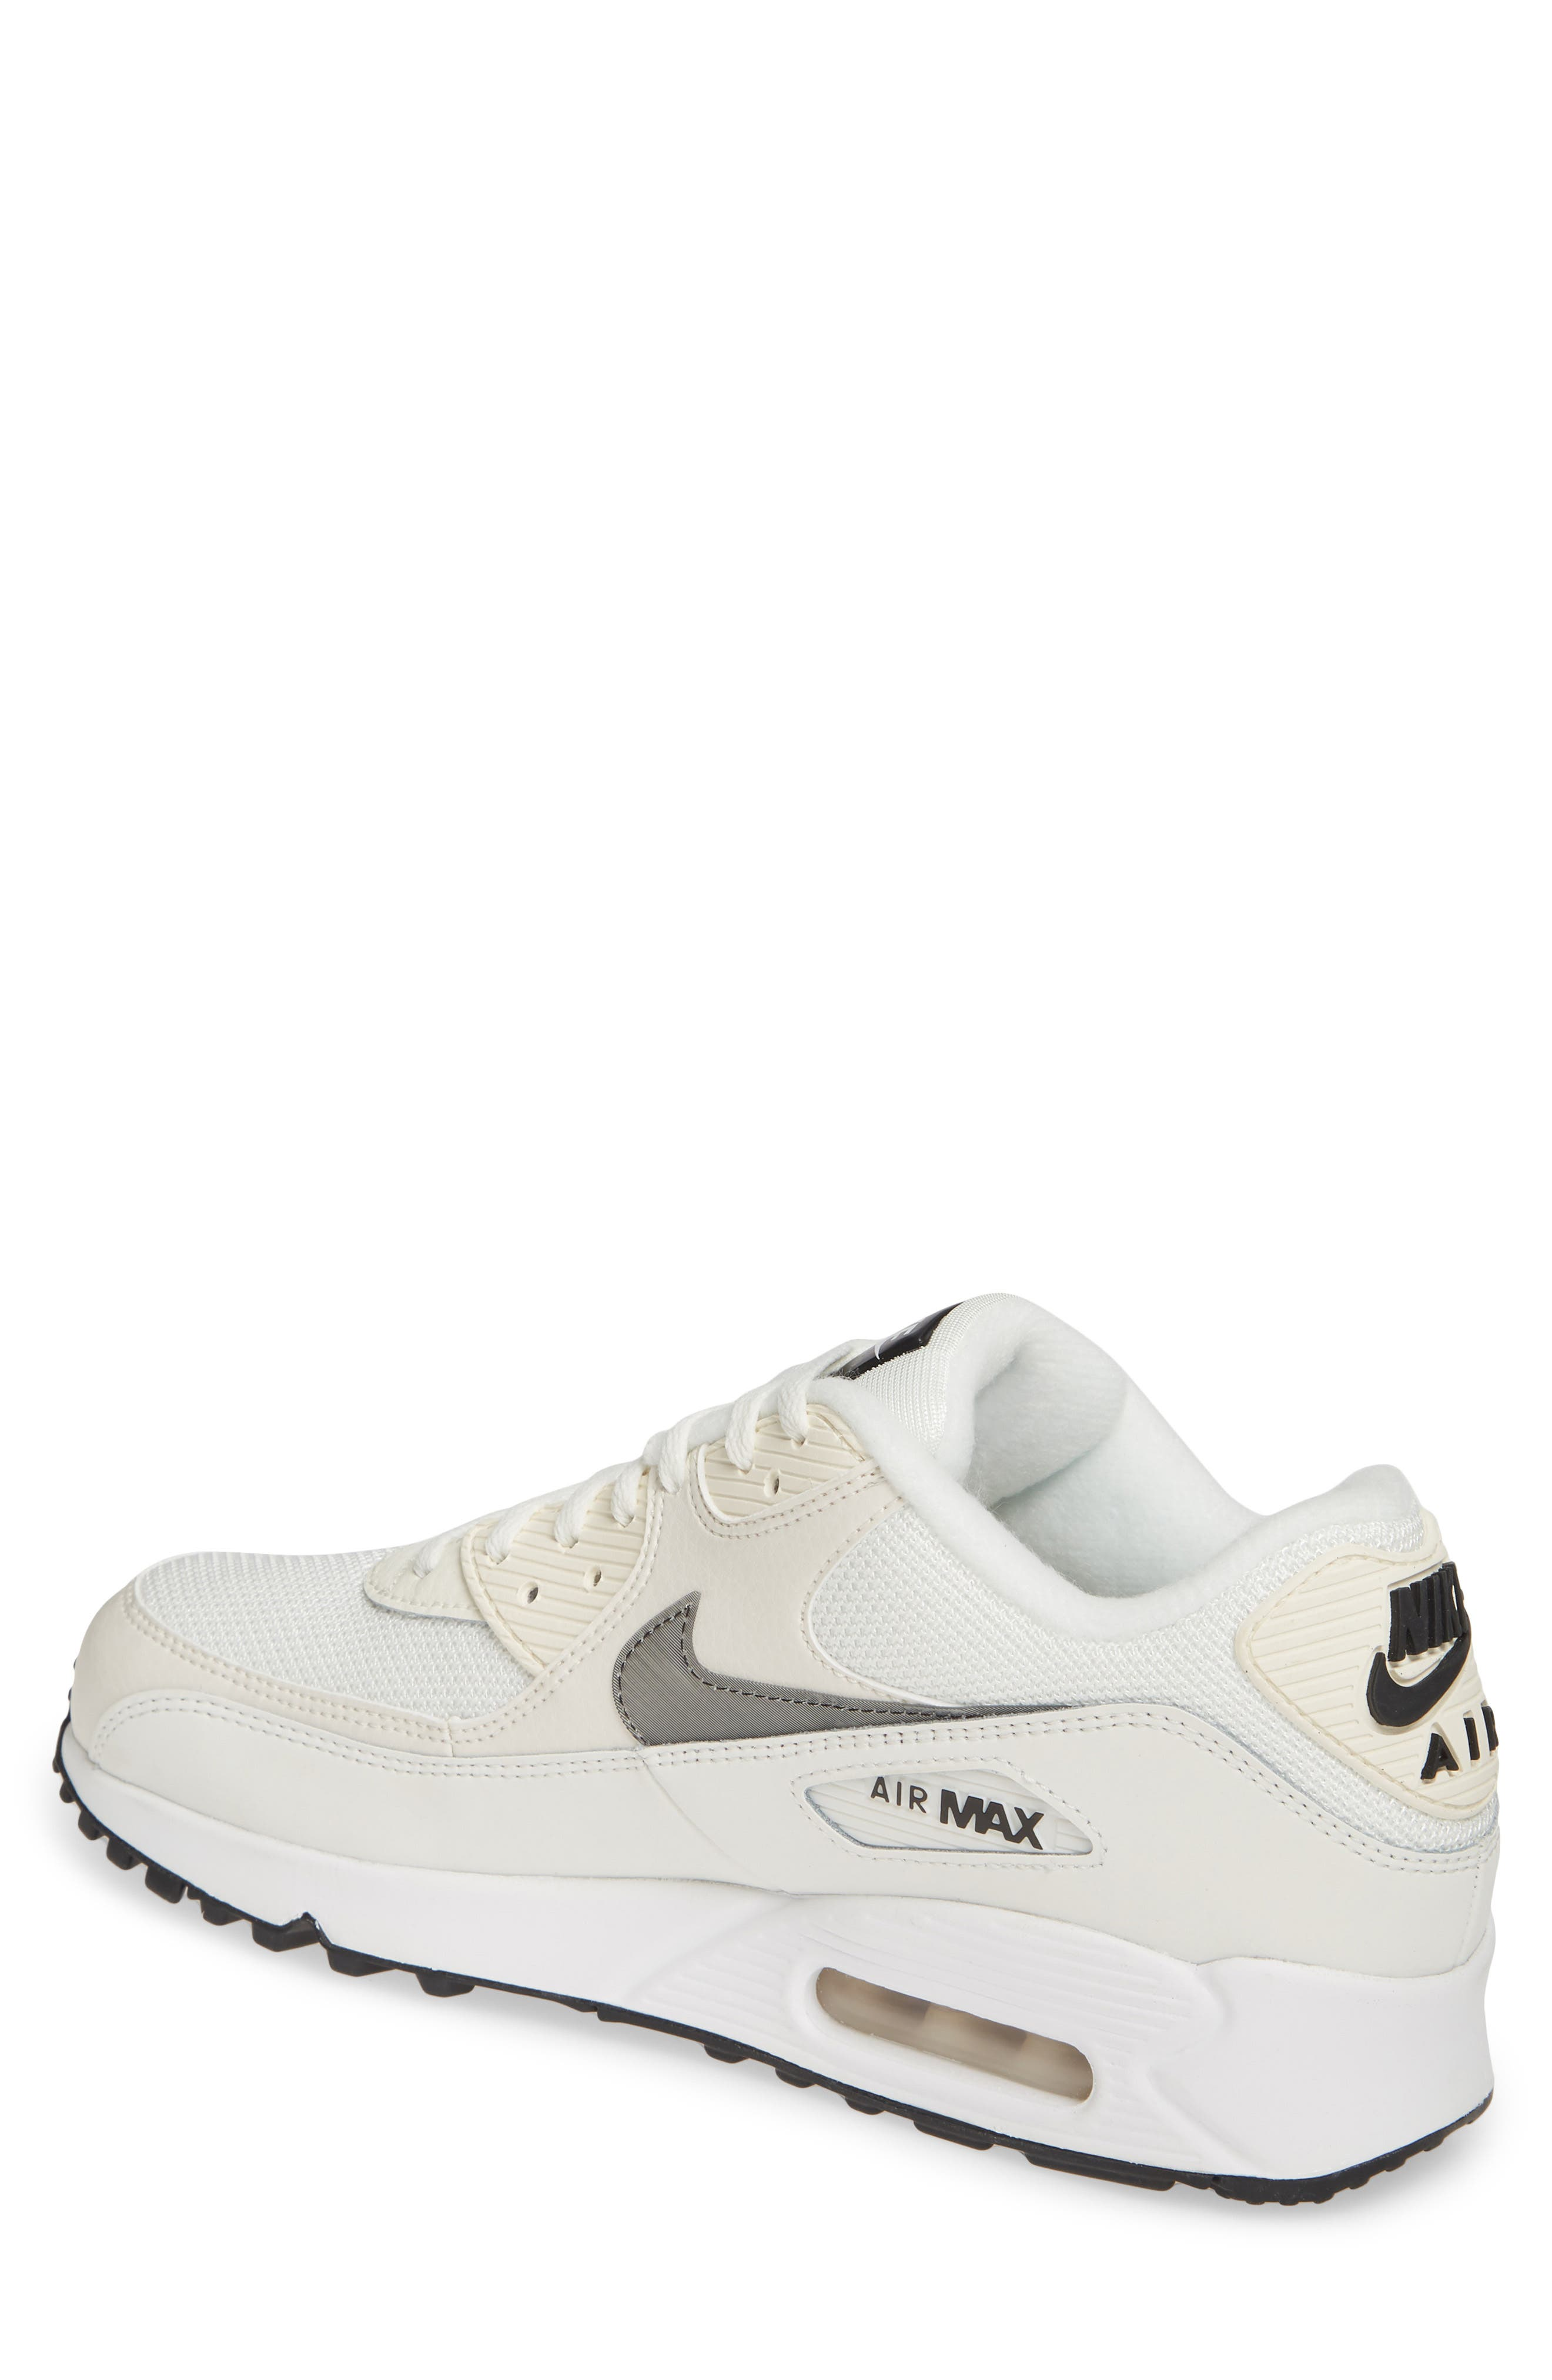 Nike Women's Nike Air Max 90 Ez Sneaker, Size 8.5 M White from NORDSTROM   ShapeShop